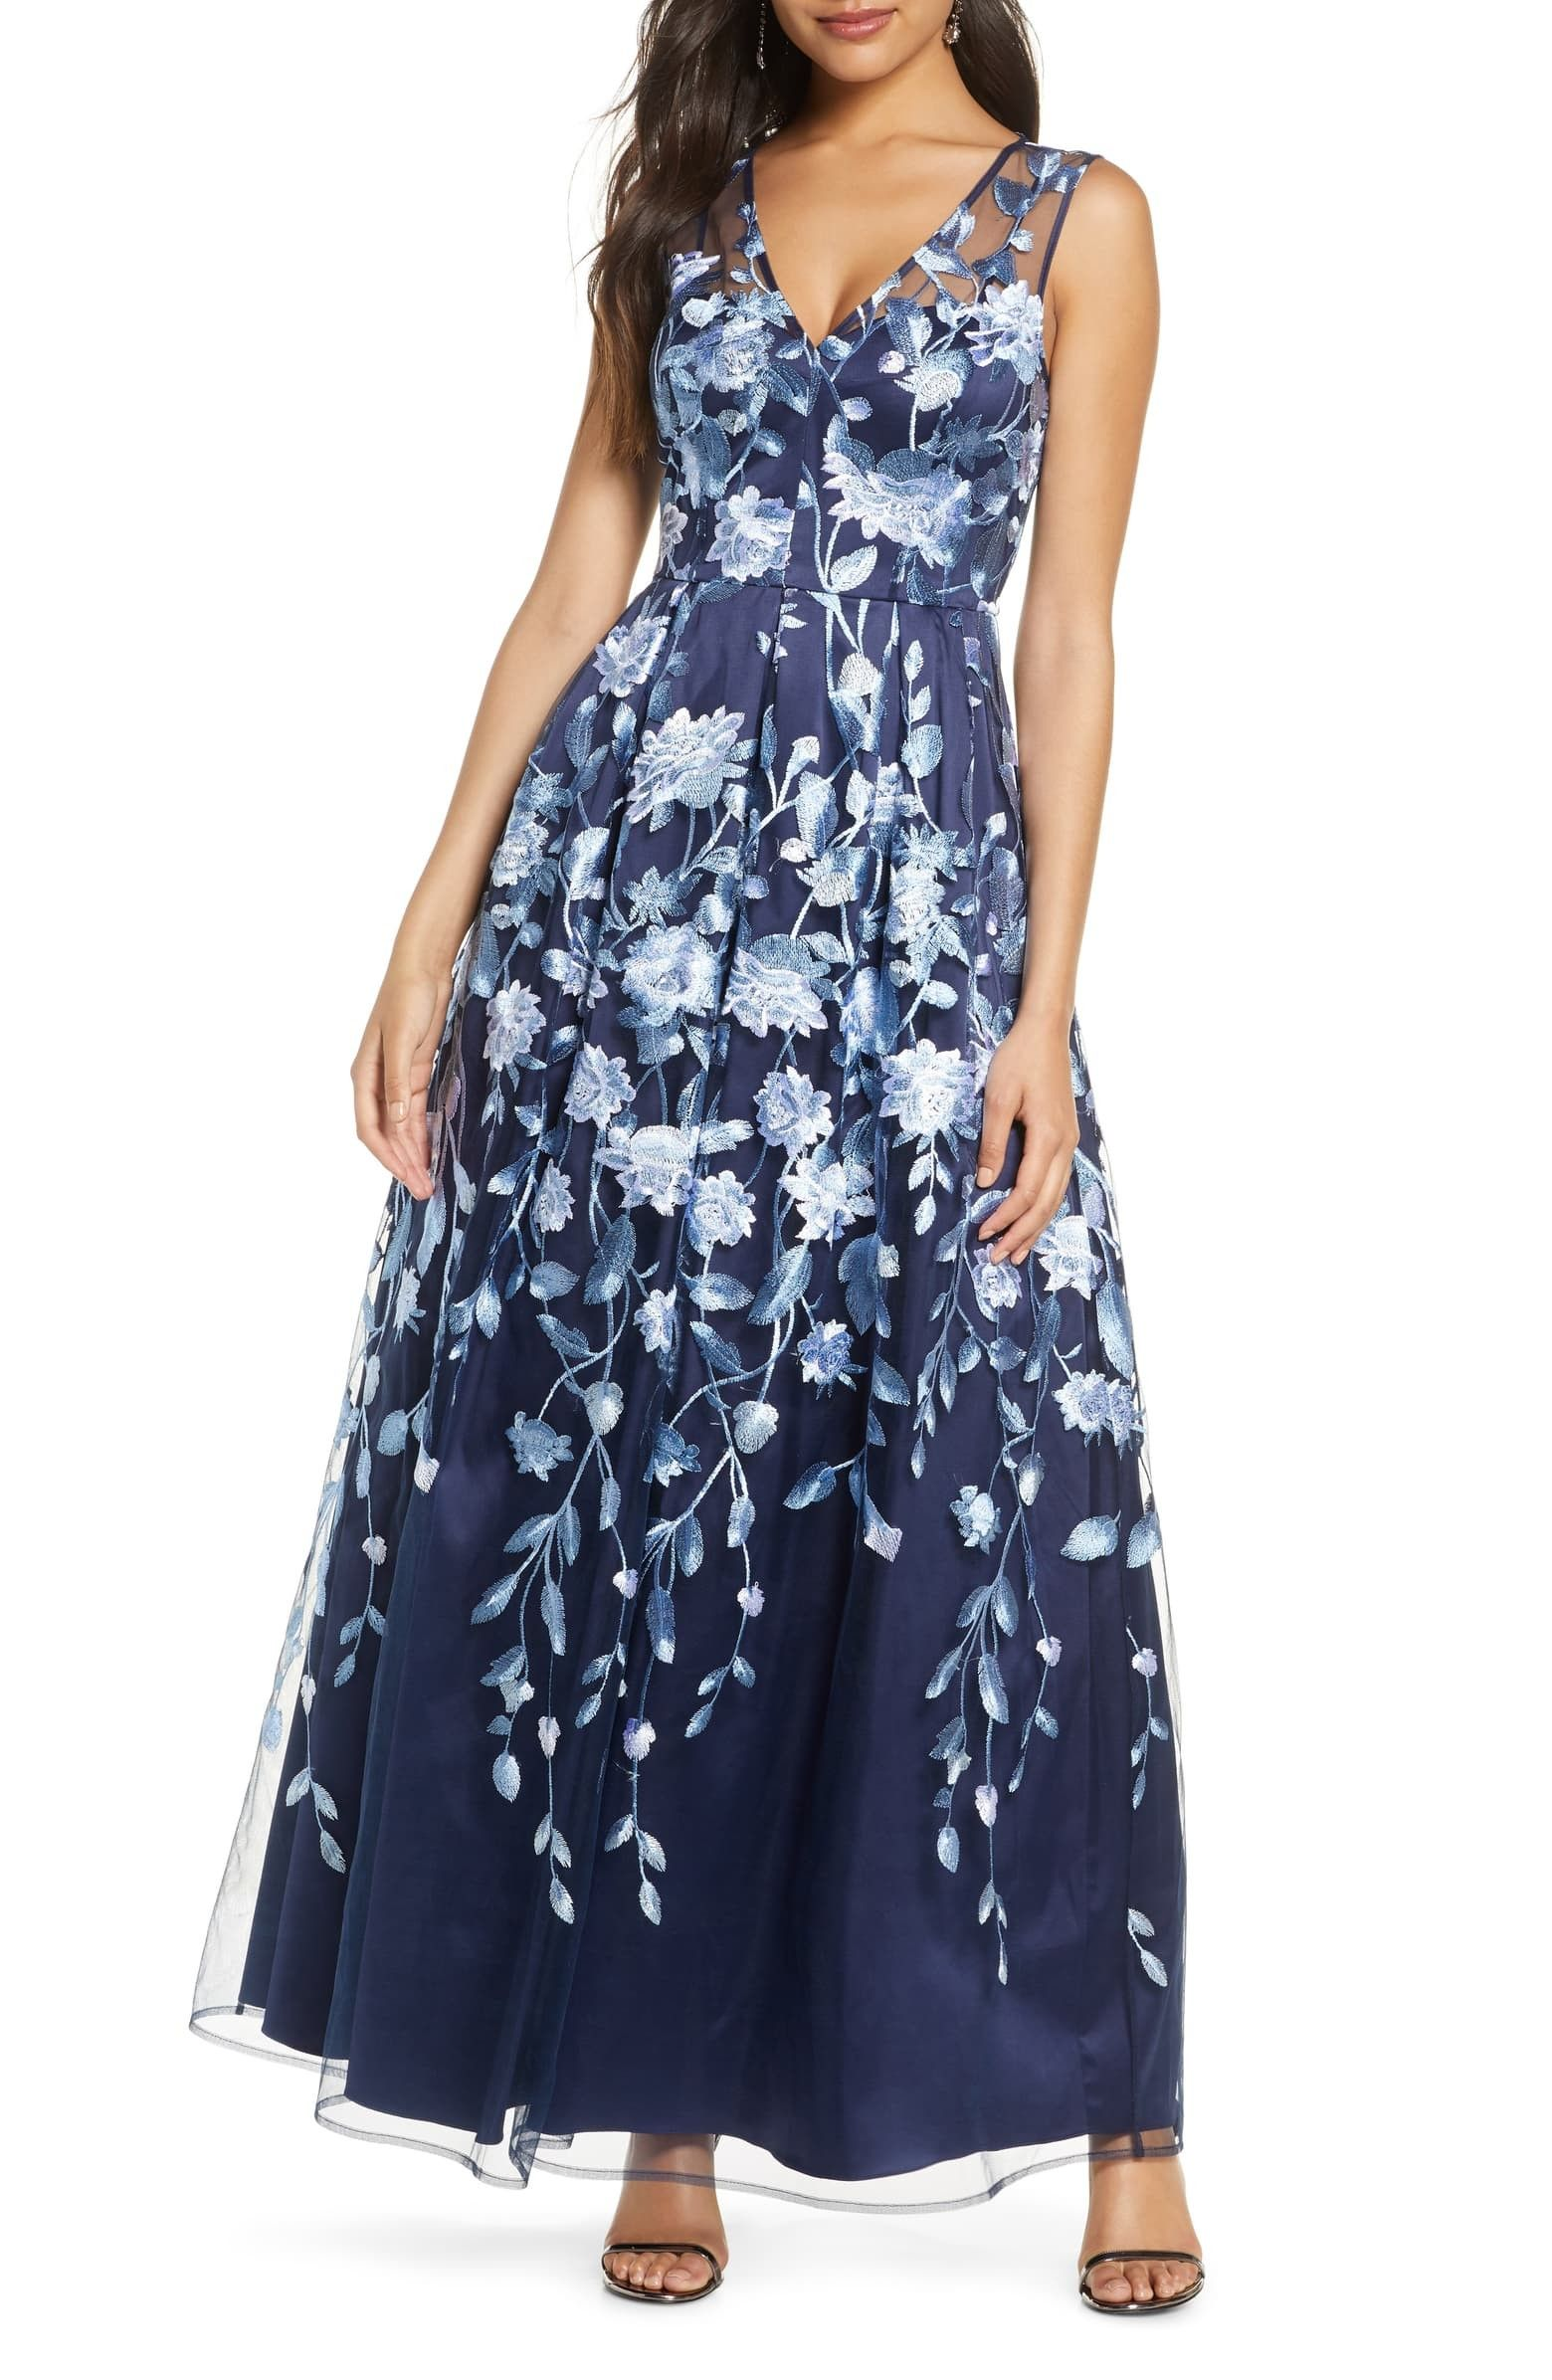 Electric Blue Coctail Dress  Greek style sleeveless chiffon evening dress for womens  Knee length wedding party gown  Short prom gown